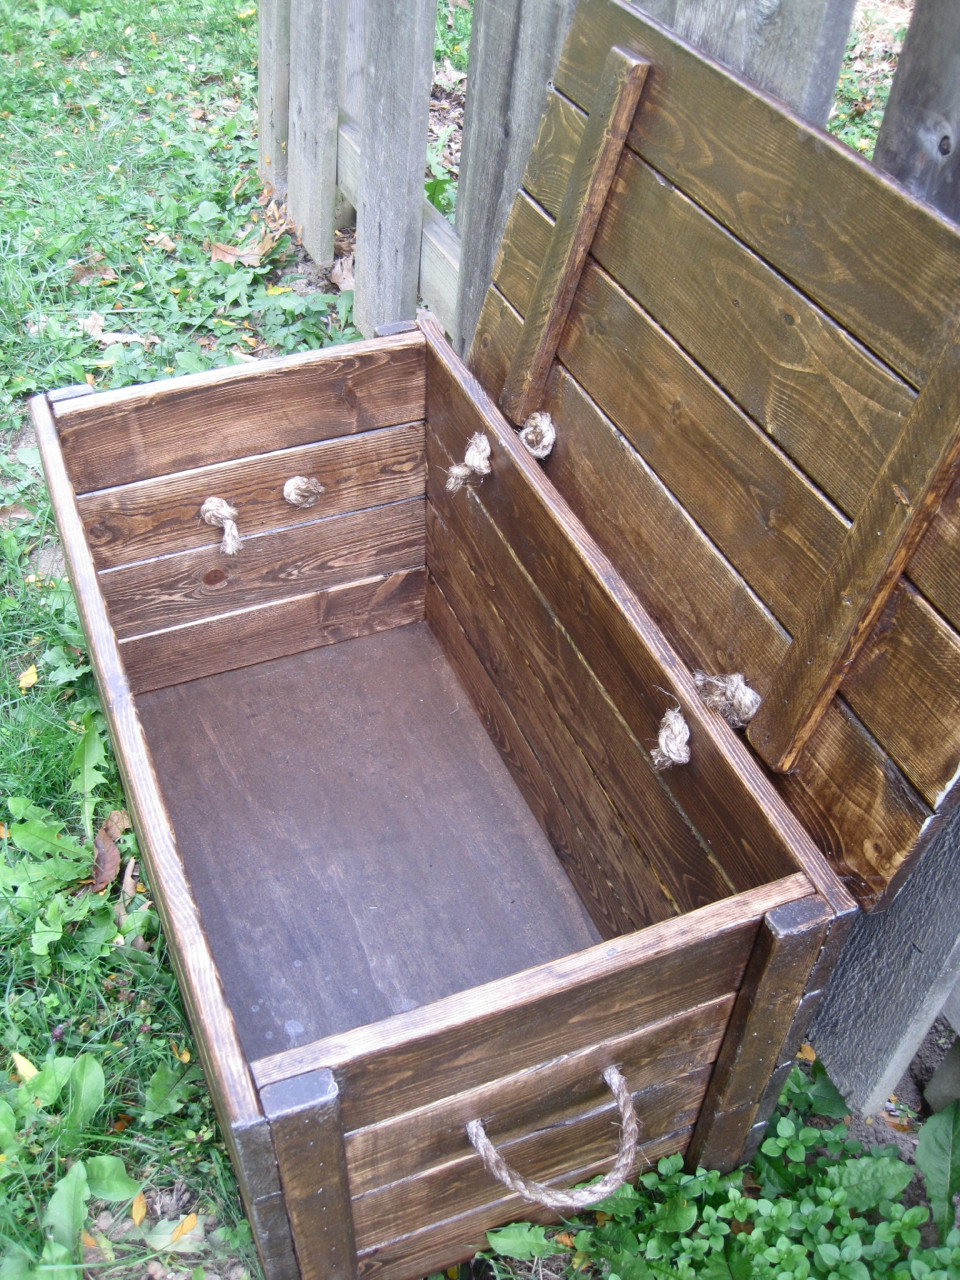 Best ideas about DIY Wood Chest Plans . Save or Pin The Project Lady Wood Storage Chest Make your own Now.